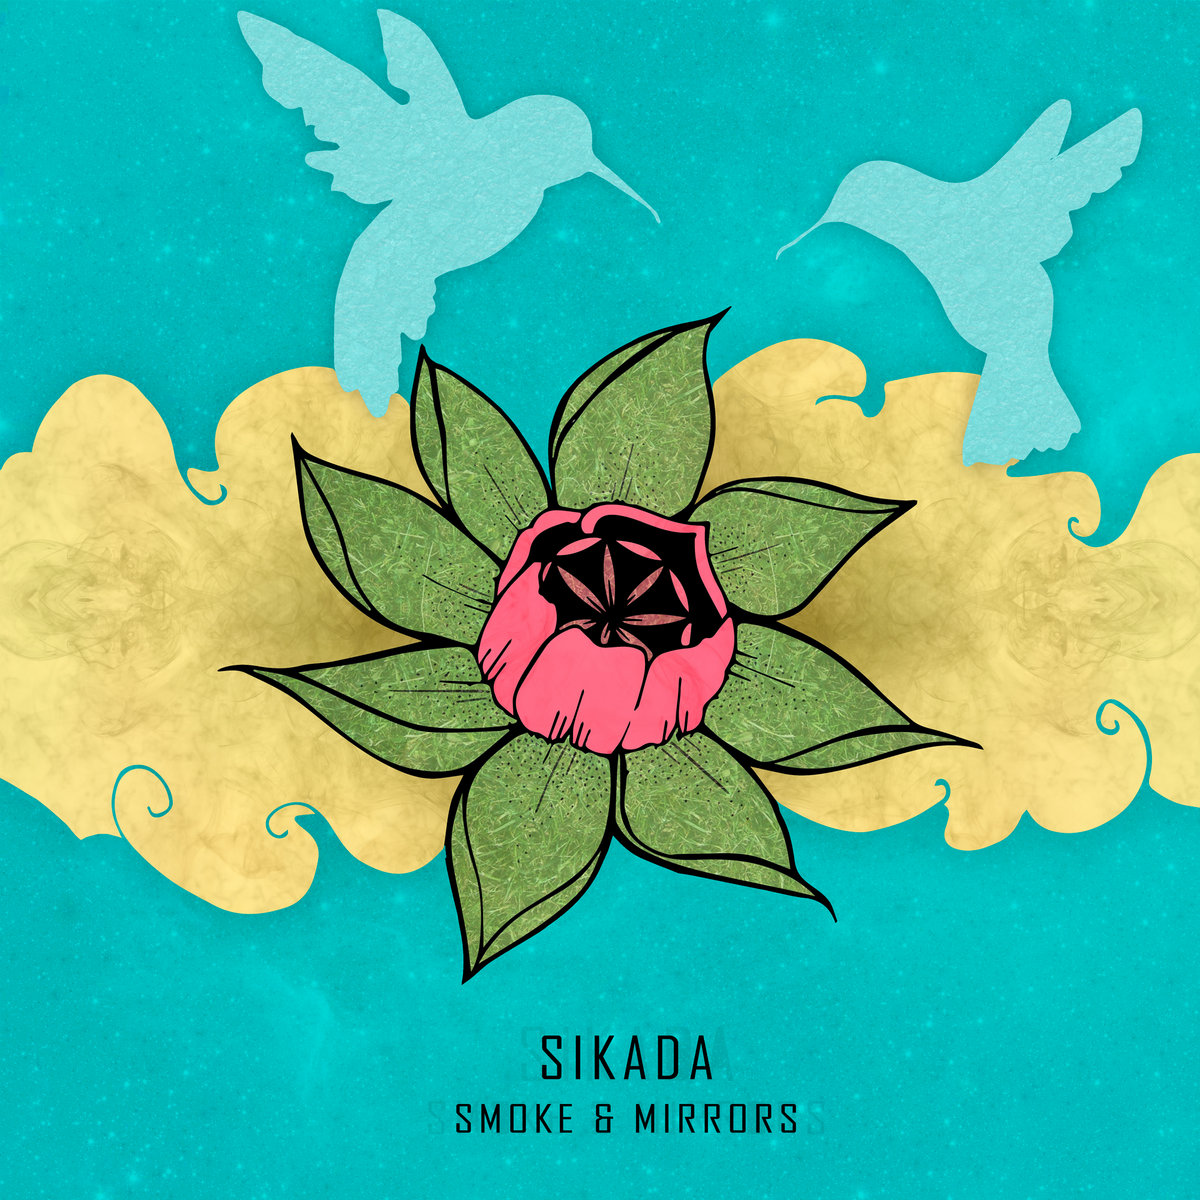 Smoke mirrors ep outta026 outtallectuals by sikada izmirmasajfo